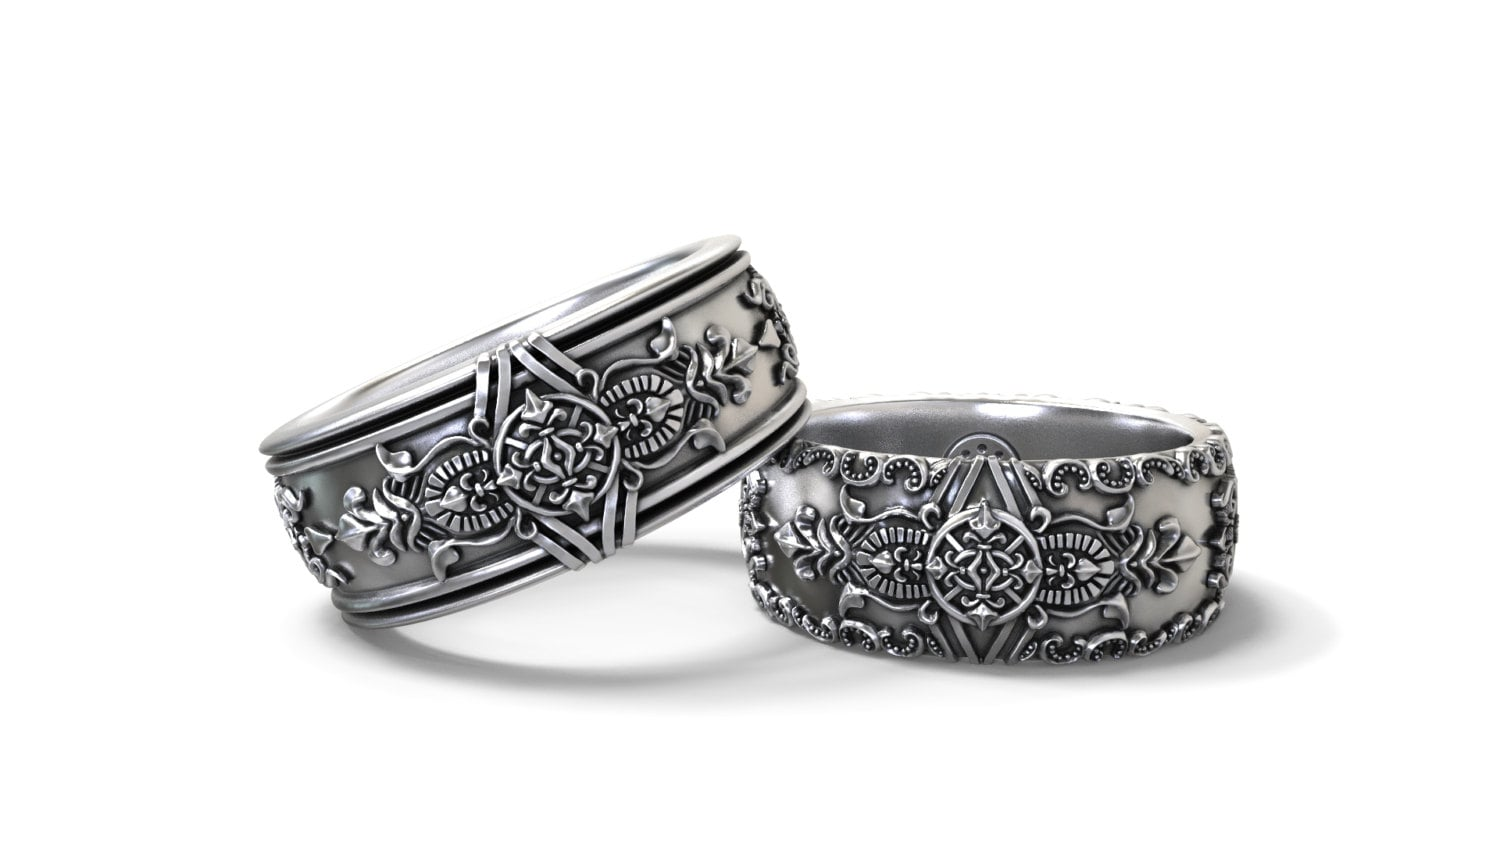 Gothic Wedding Rings.Gothic Wedding Bands His And Hers Set Sterling Silver Gold Palladium Platinum